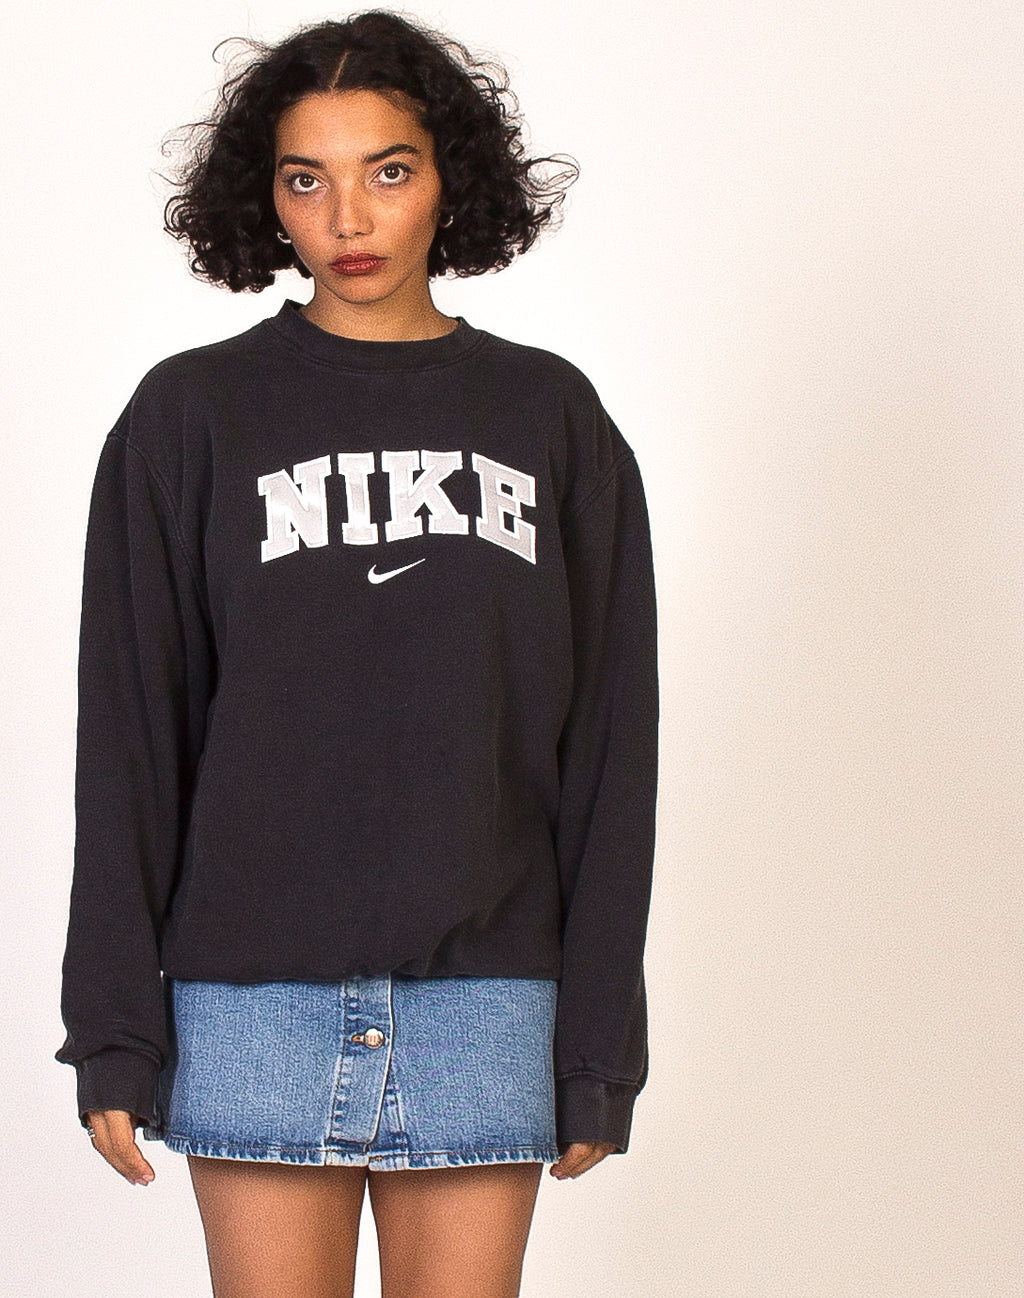 NIKE WASHED BLACK LOGO SWEATSHIRT